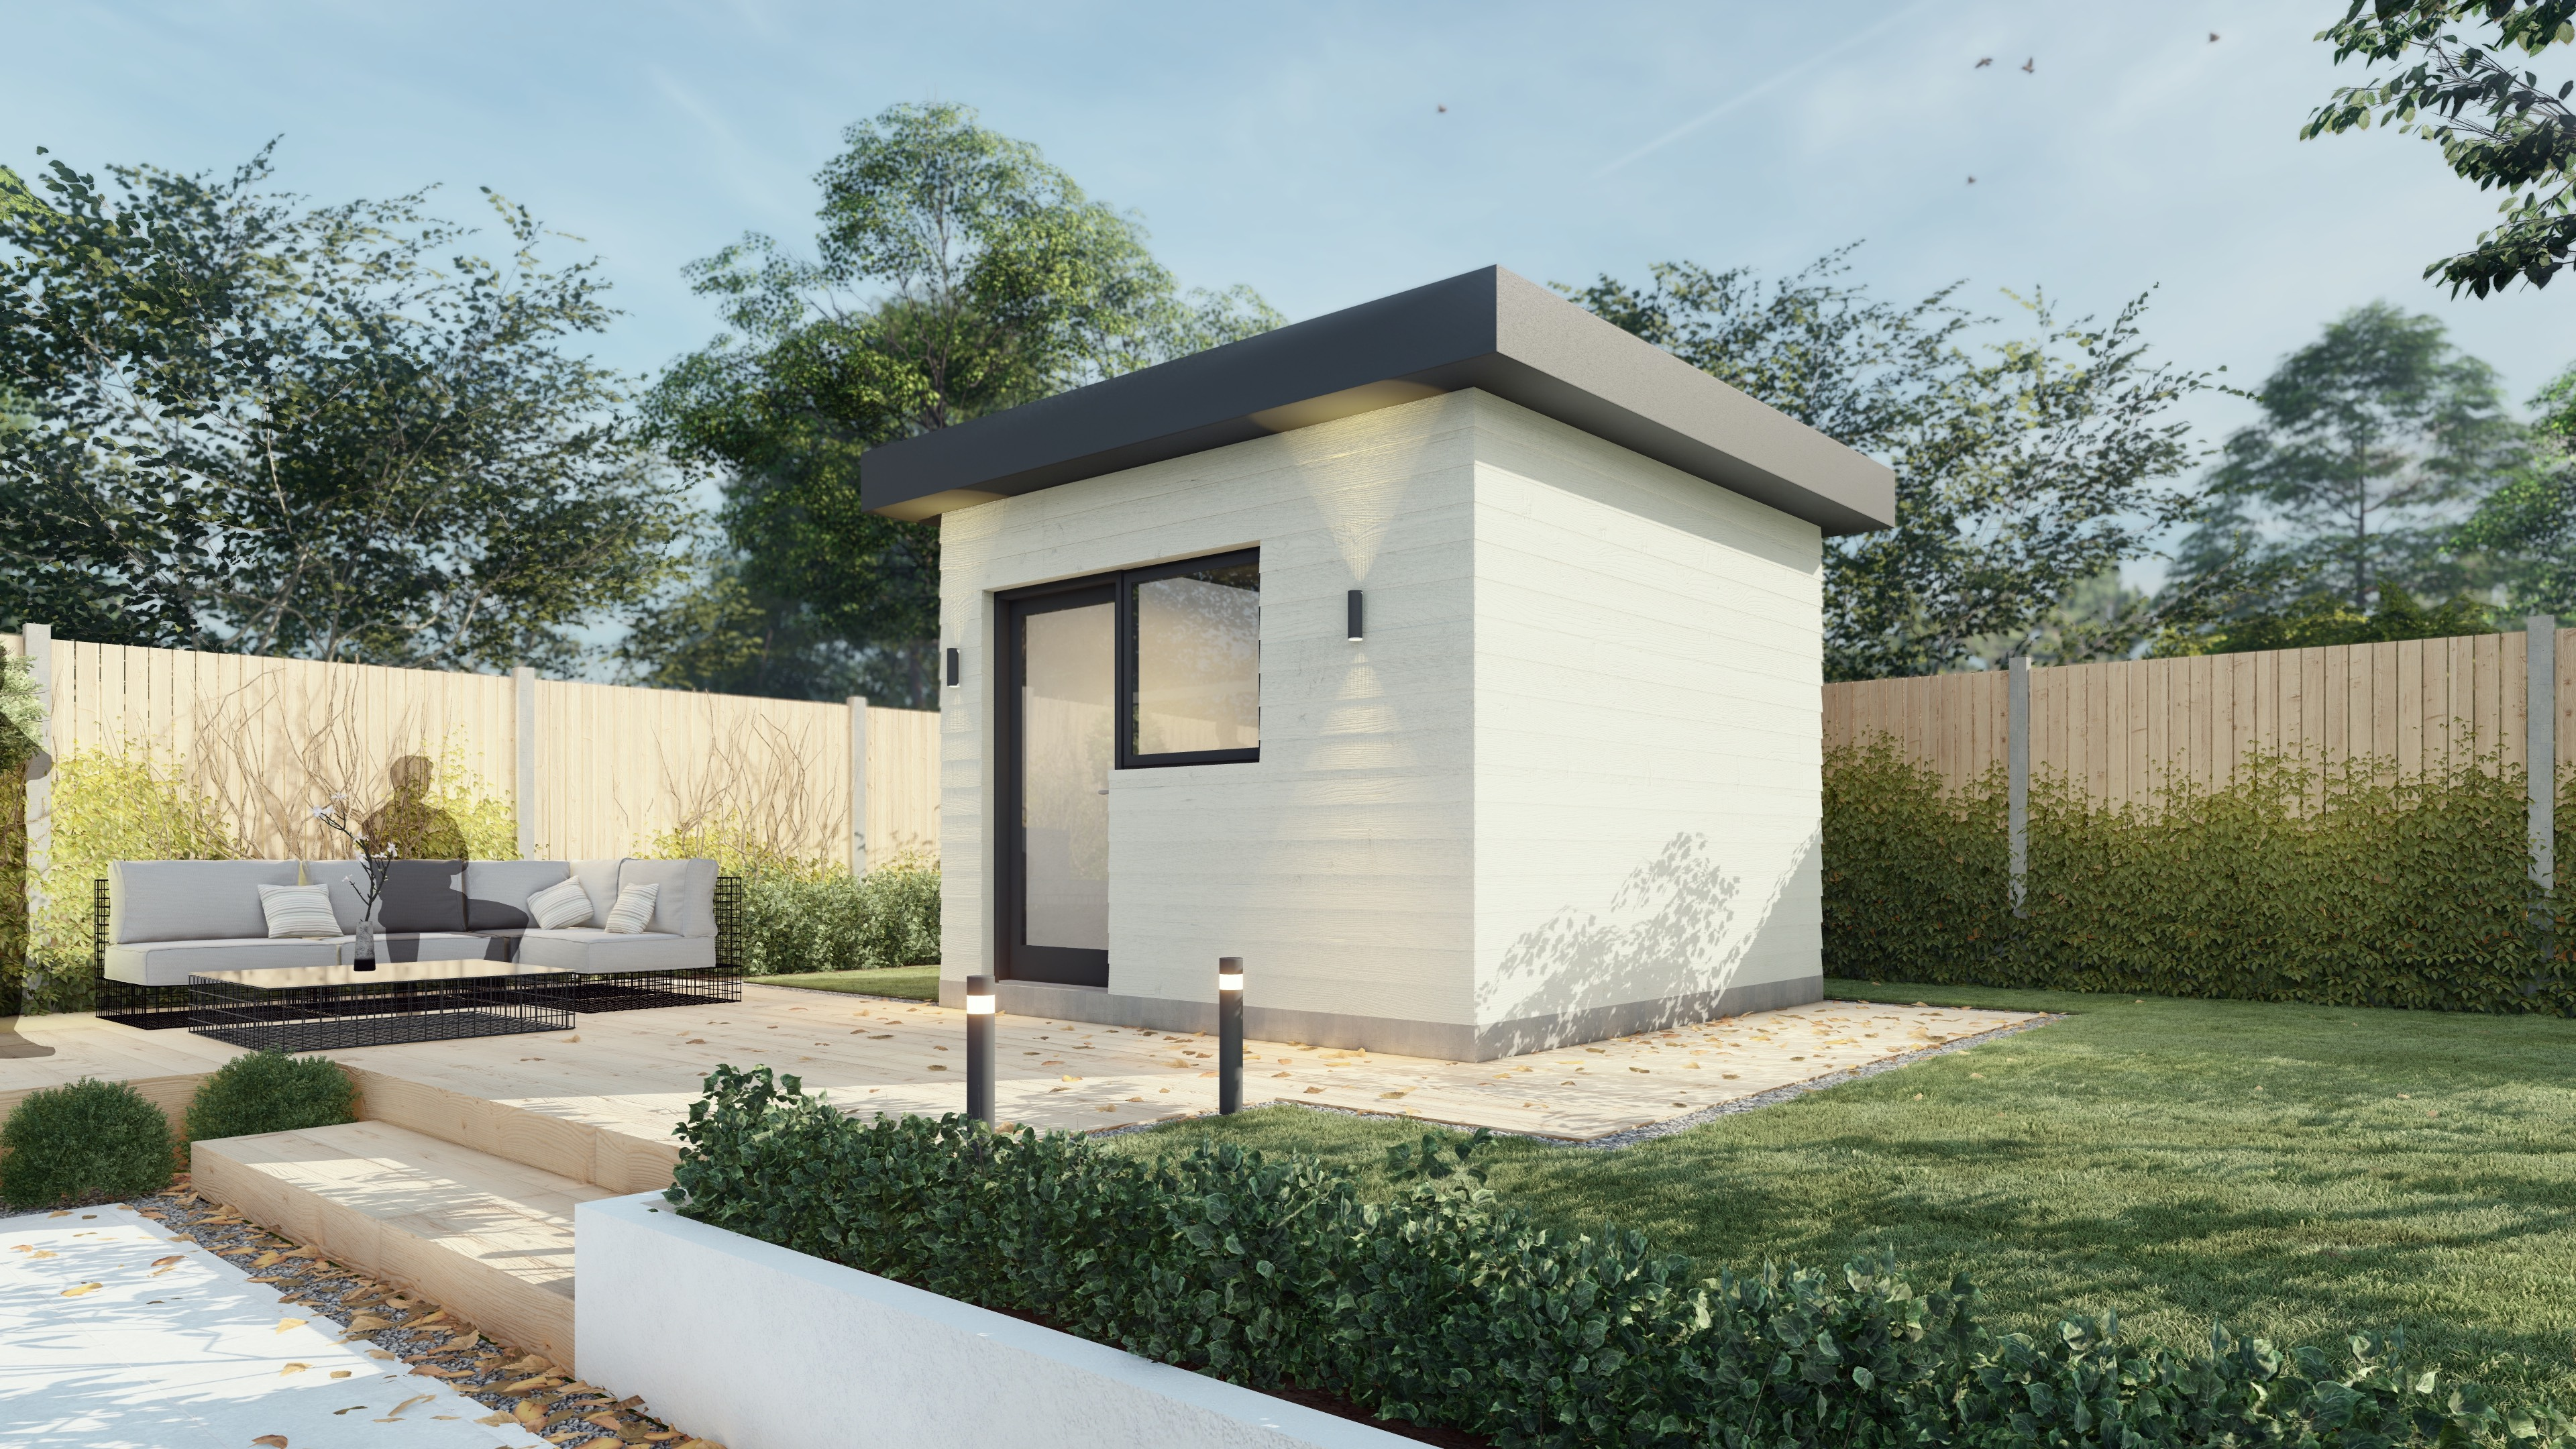 Ramour office unit render side view